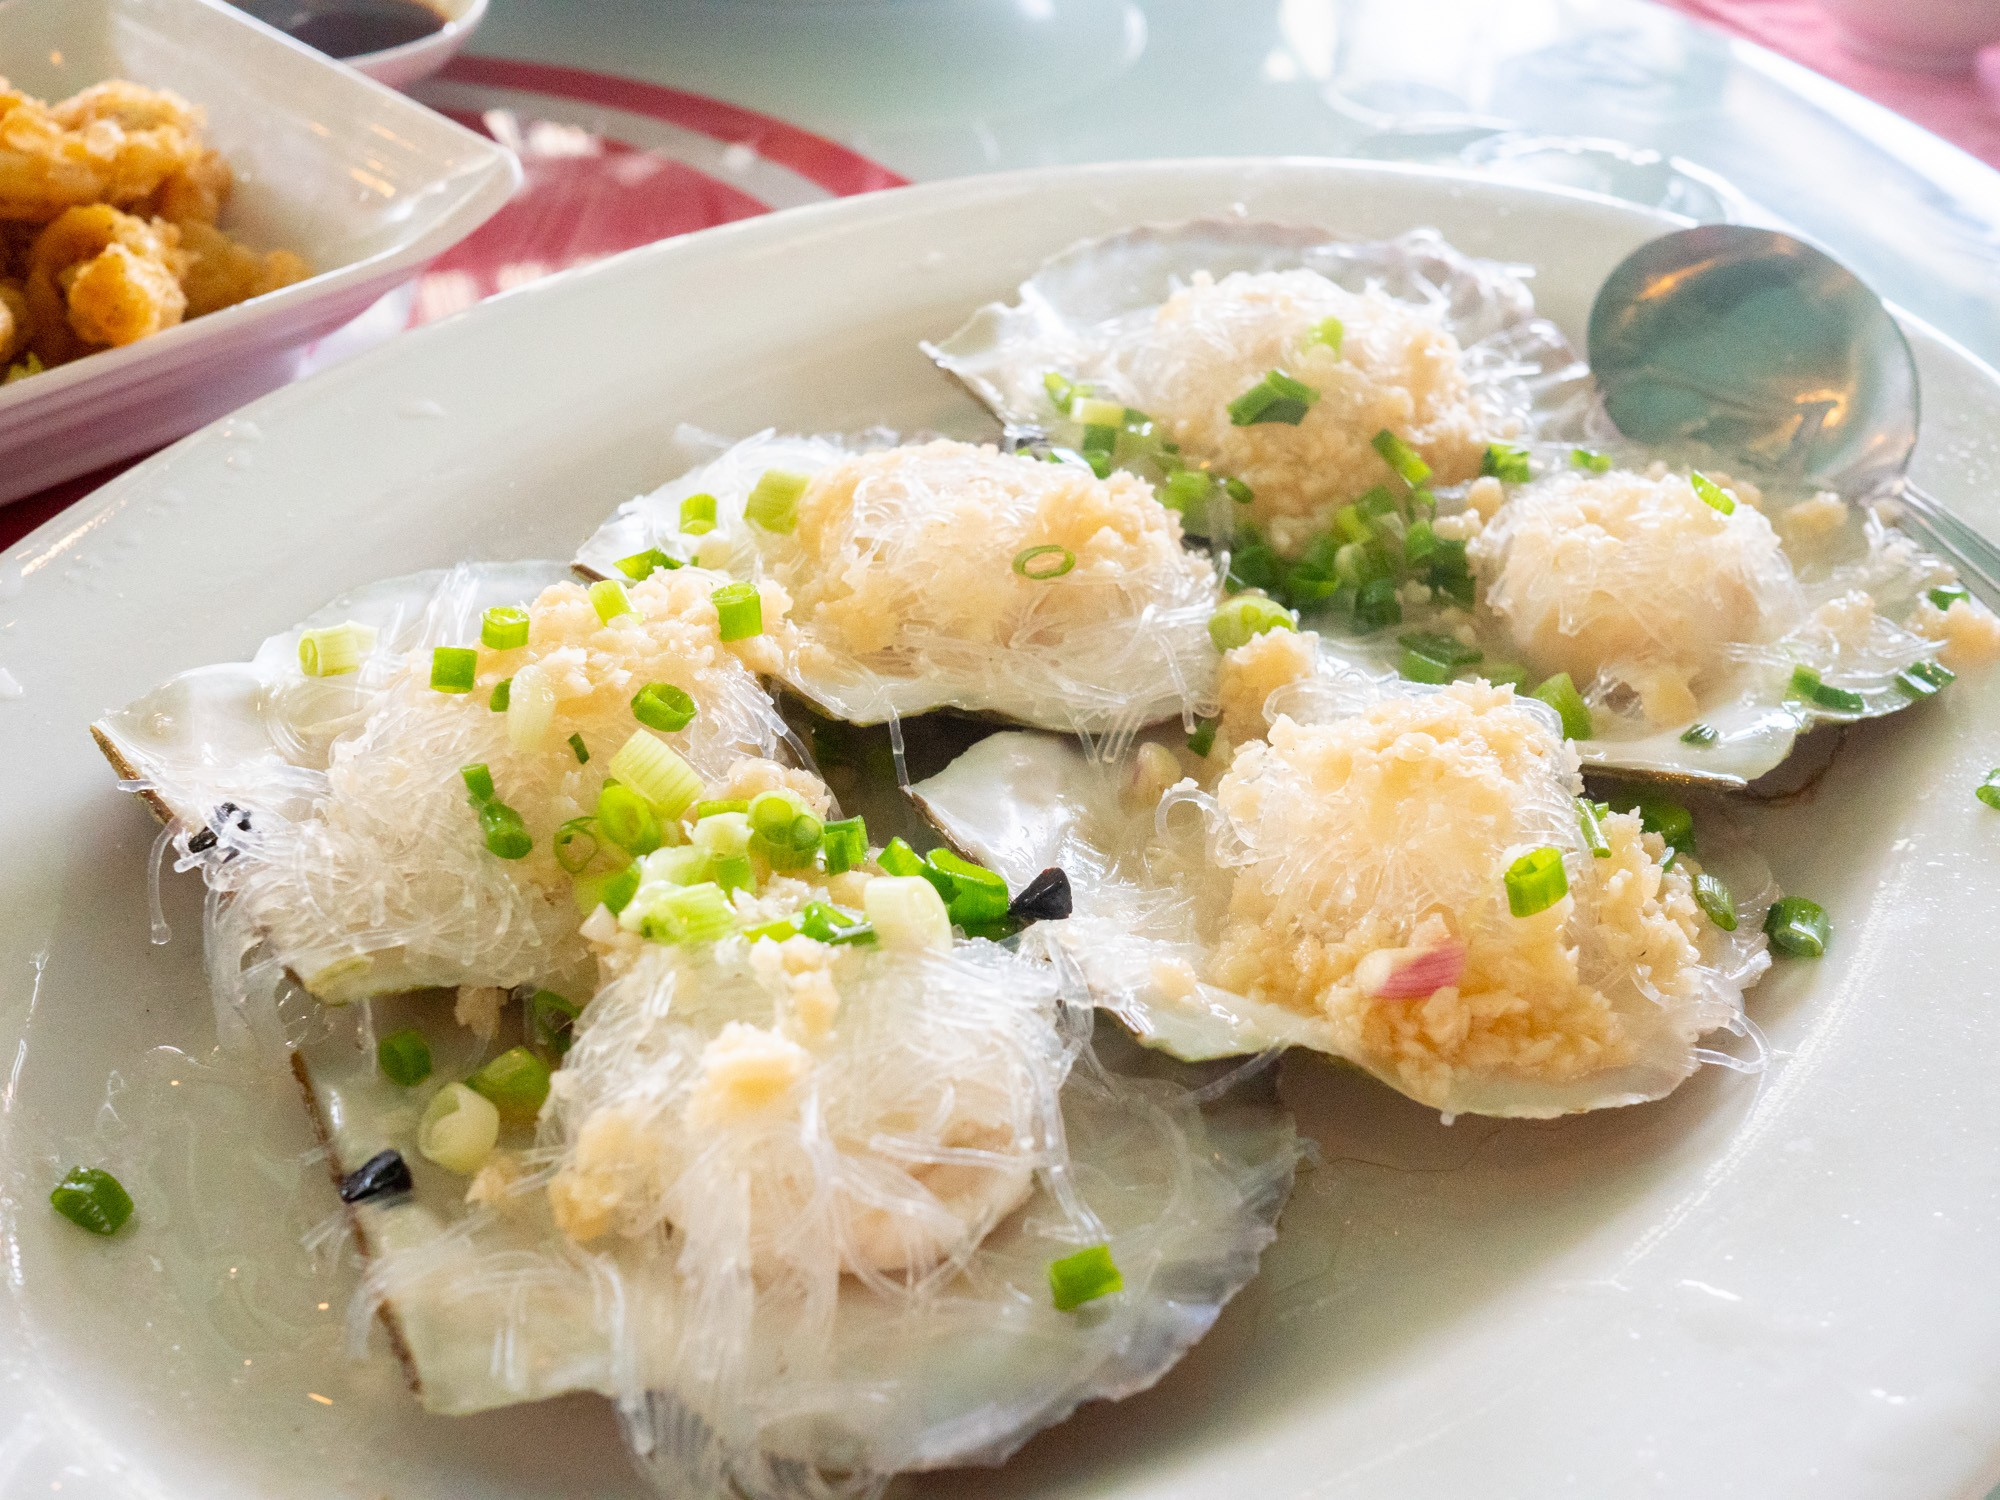 Steamed scallops with garlic and rice noodles (蒜蓉粉丝带子蒸)